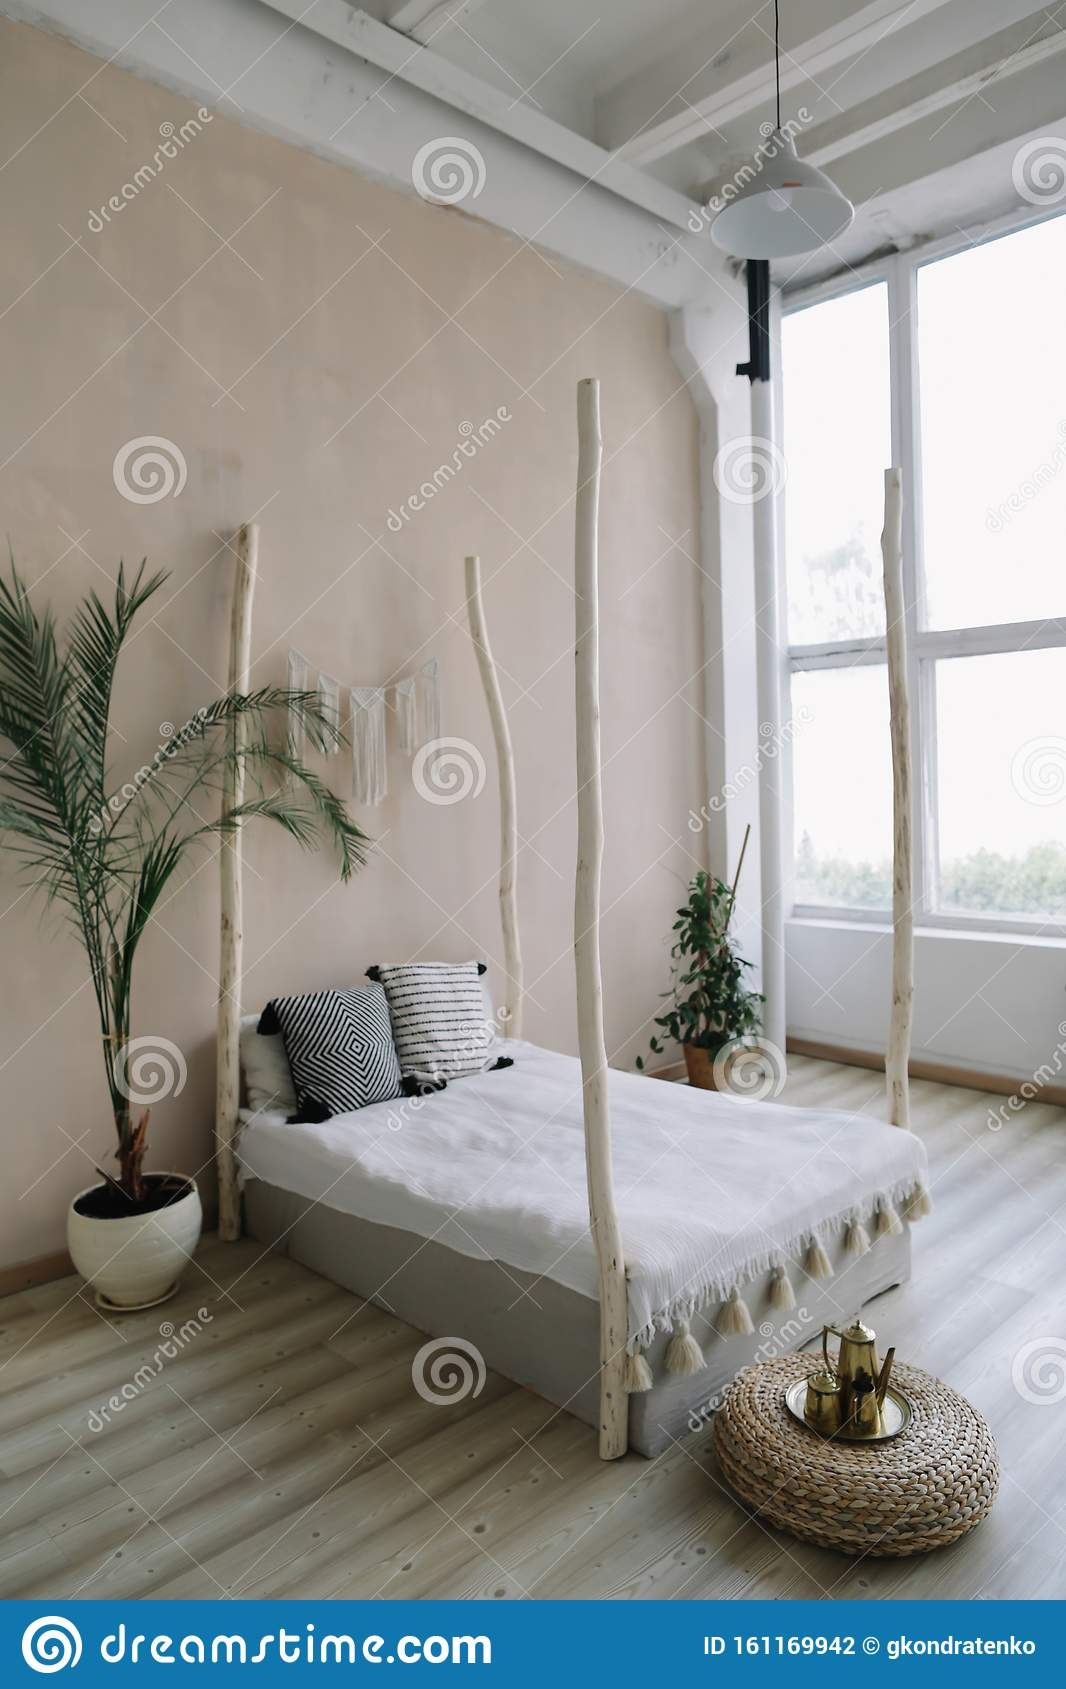 Modern Minimal Home Interior Design Bed With Wooden Canopy And Pillows Exotic Bedroom Interior Scandinavian Style Stock Photo Image Of Indian Ethnic 161169942